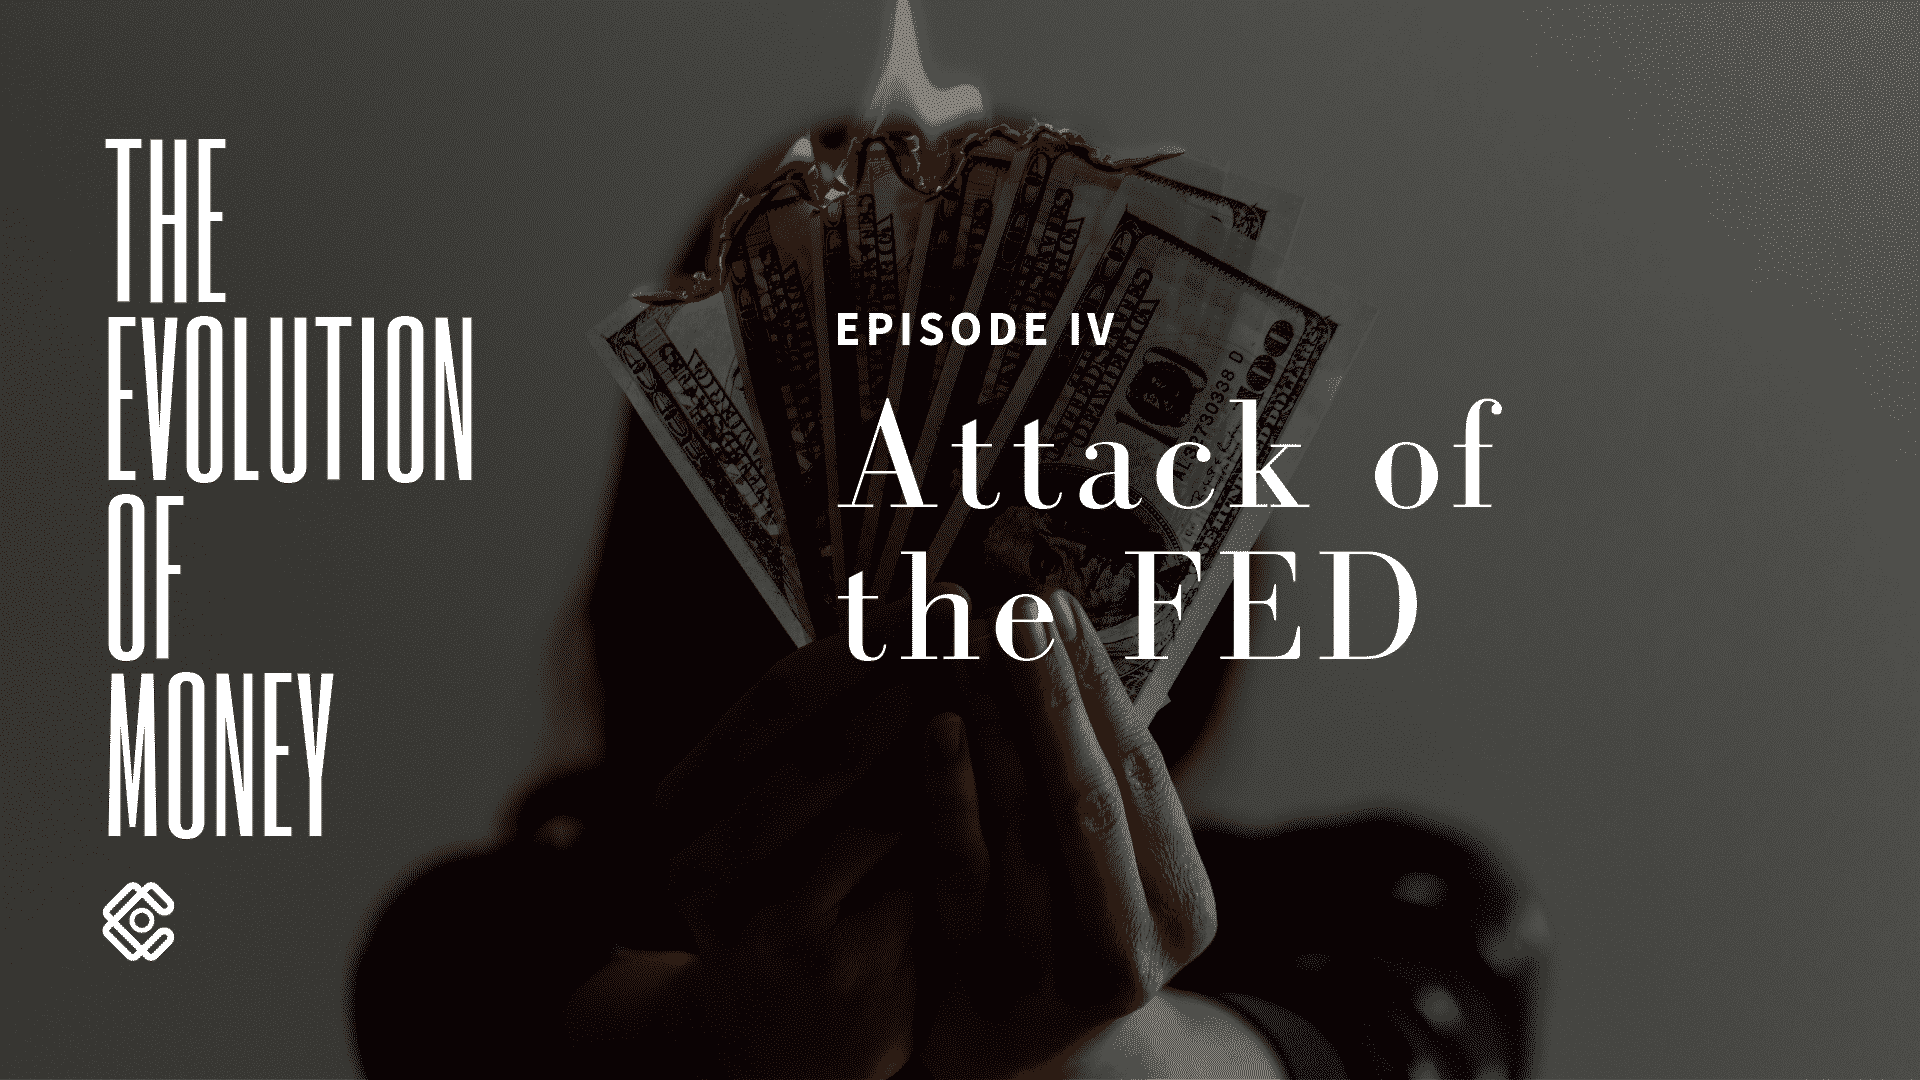 Evolution of Money. Episode IV: Attack of the FED